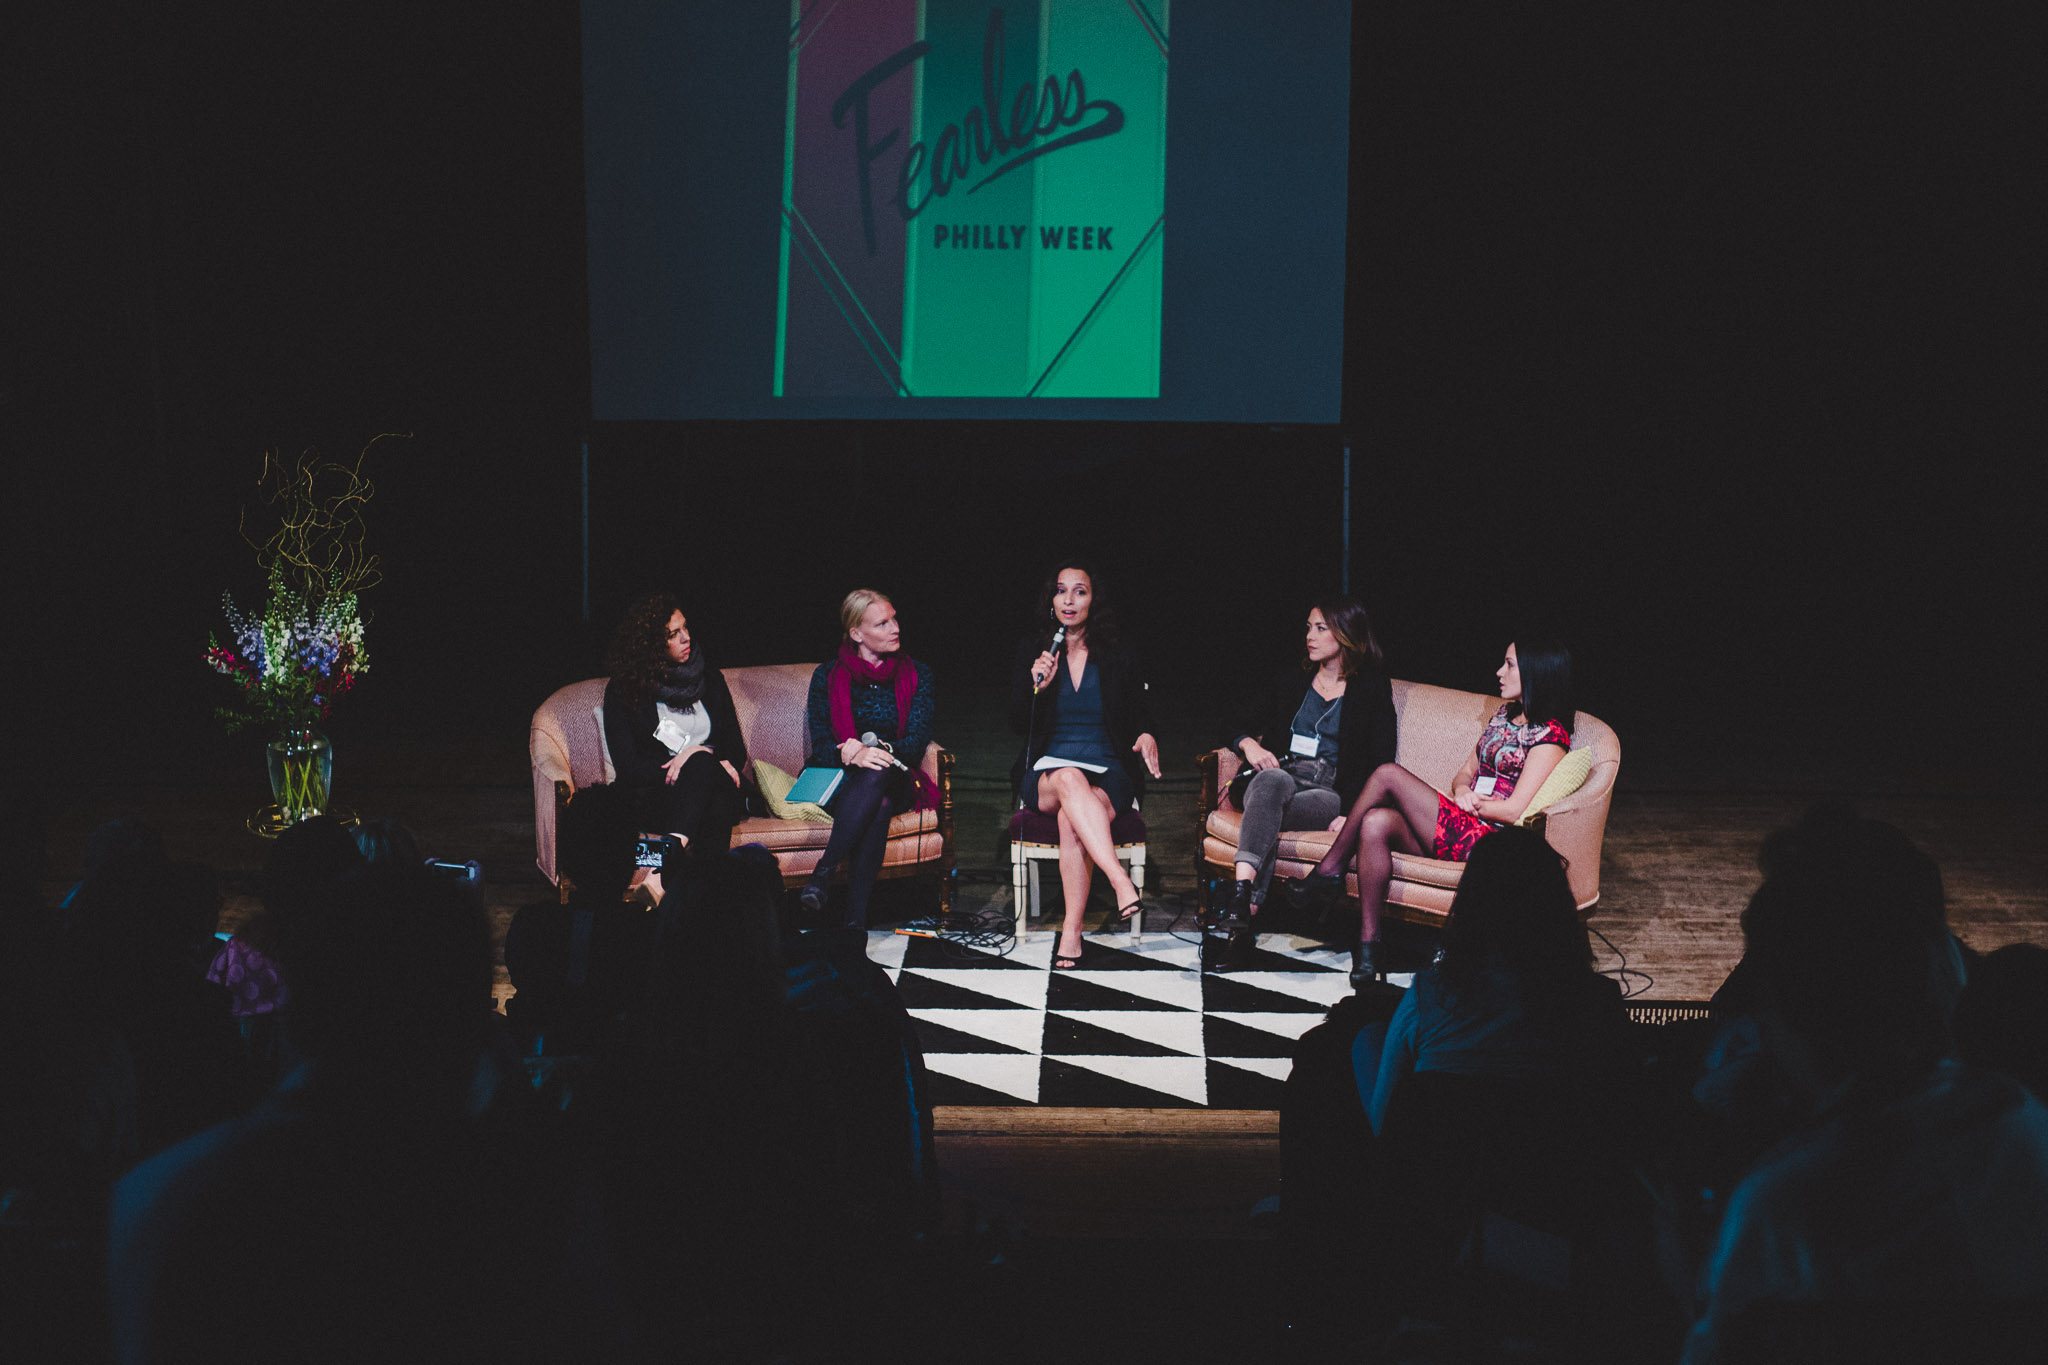 FearlessPhillyConference2015-10.jpg